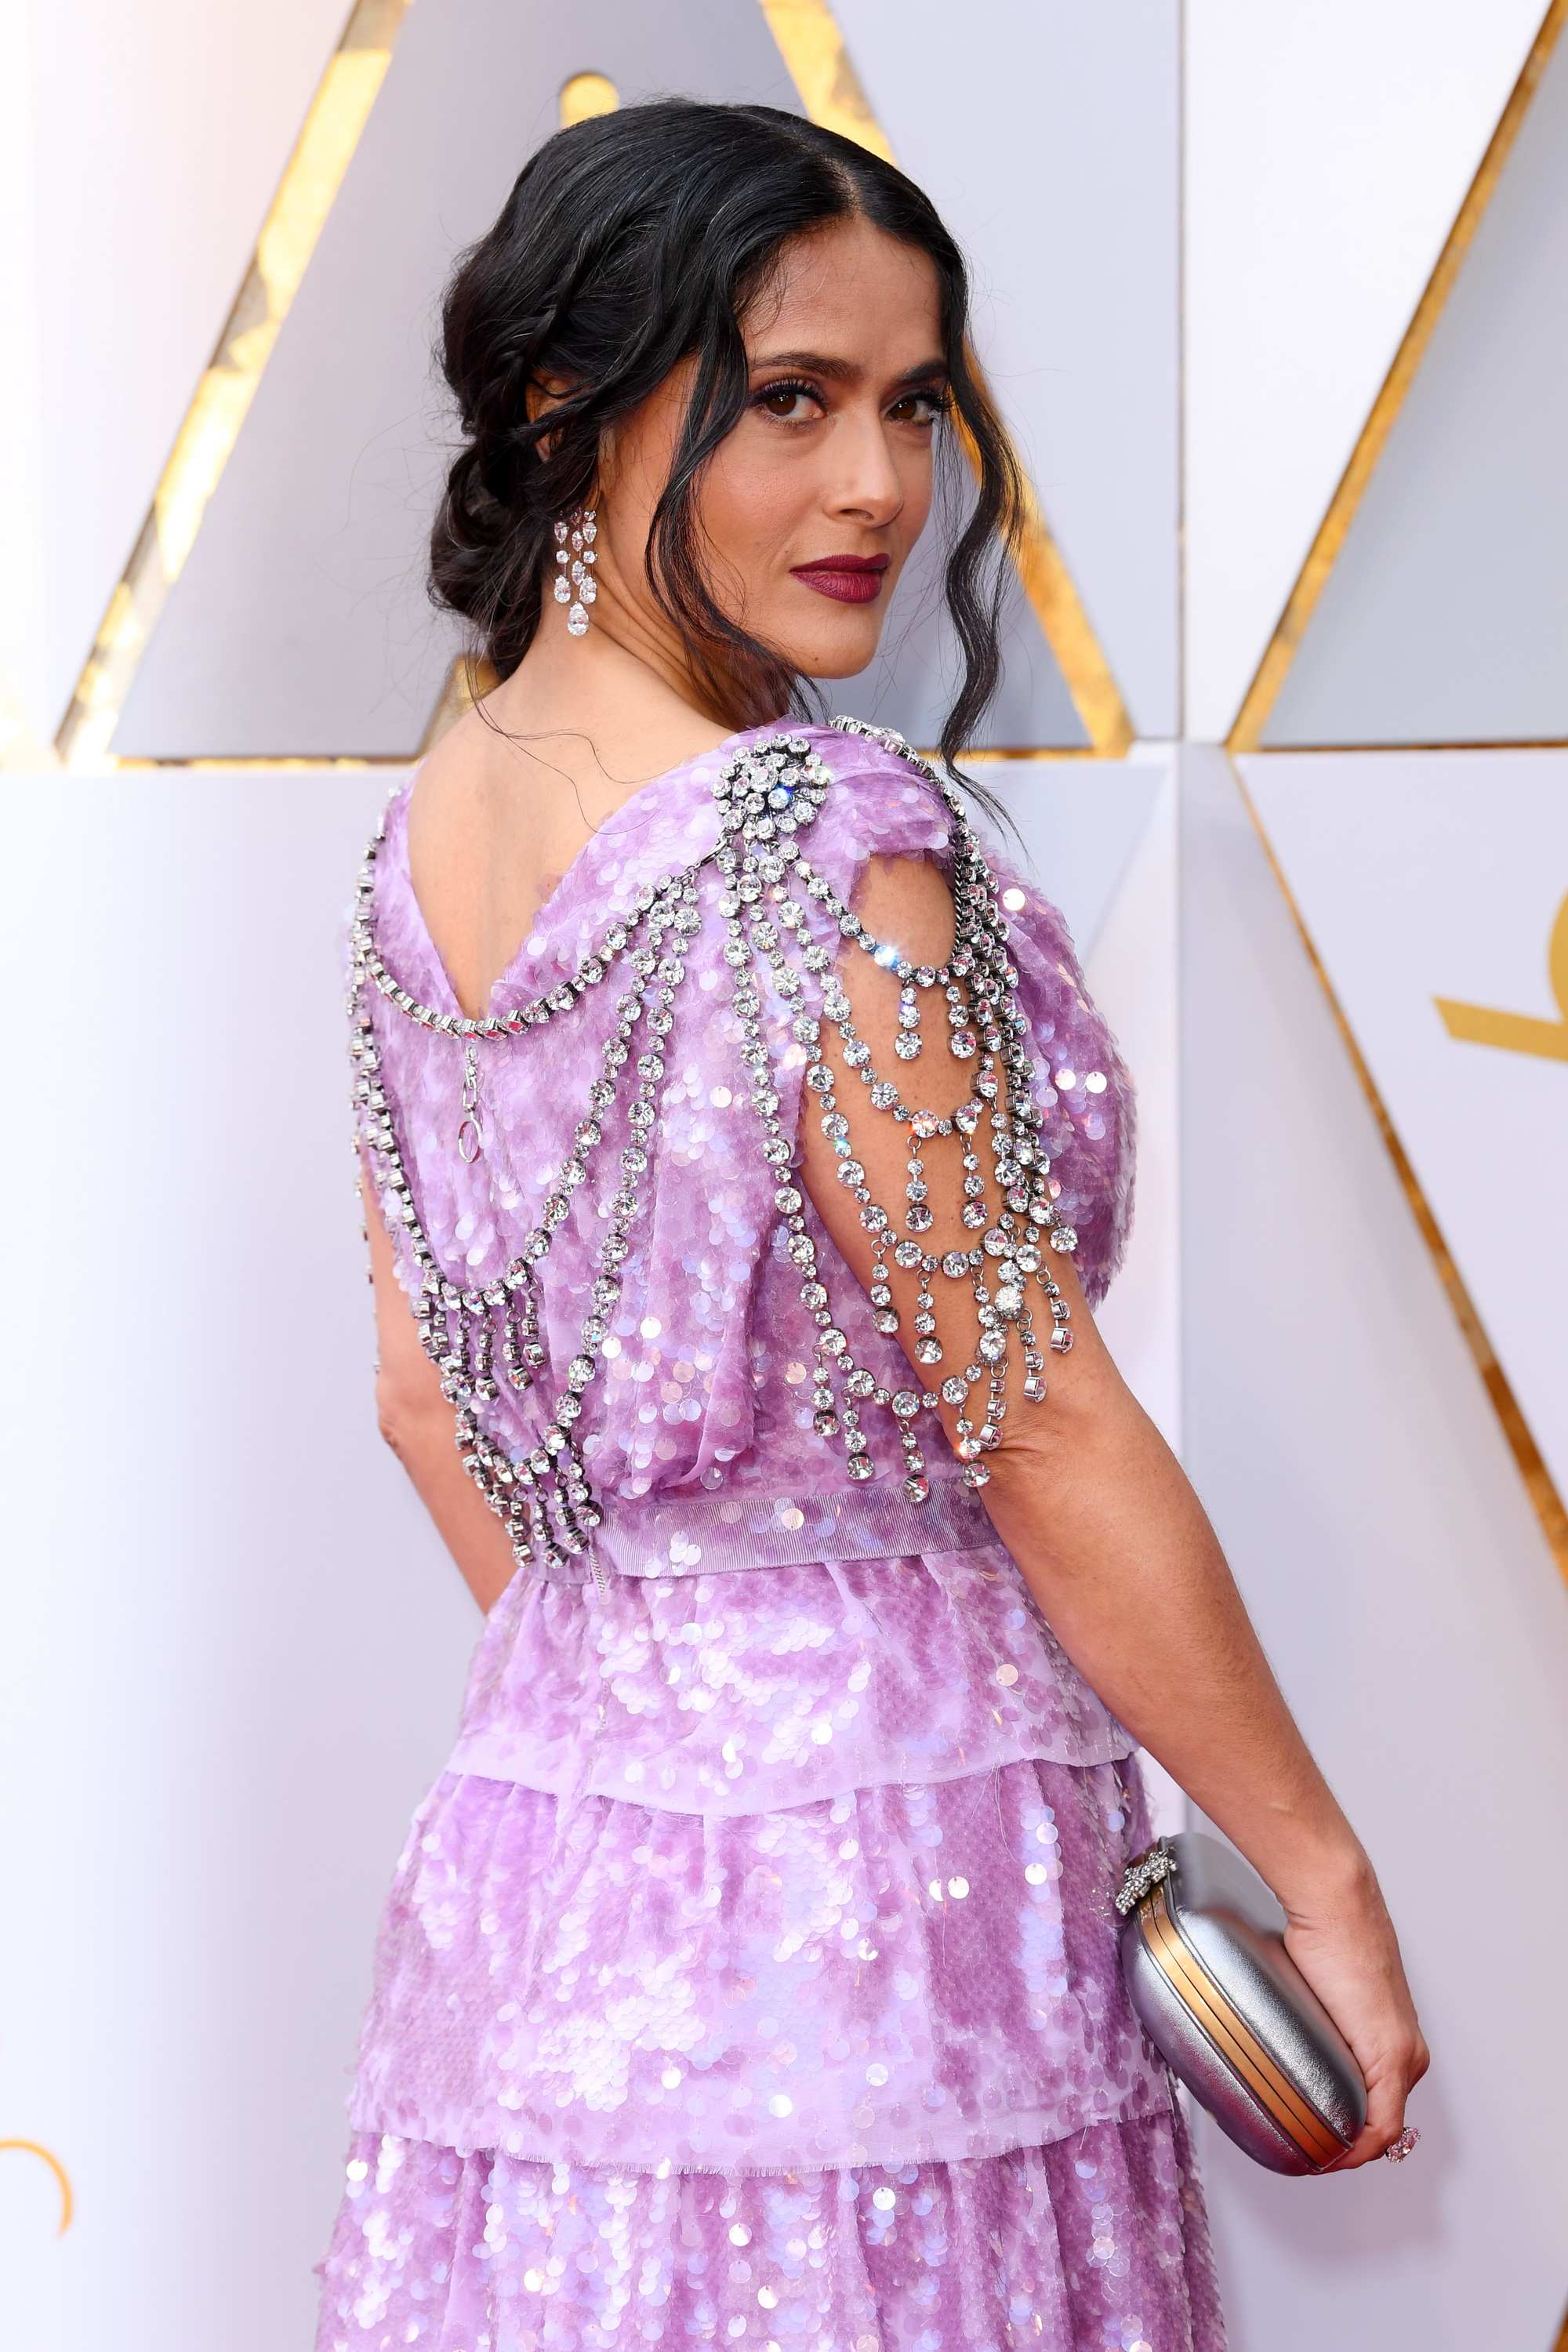 Curly hair hairstyles: Salma Hayek dark brown hair in romantic and ethereal updo on the red carpet wearing a light purple dress